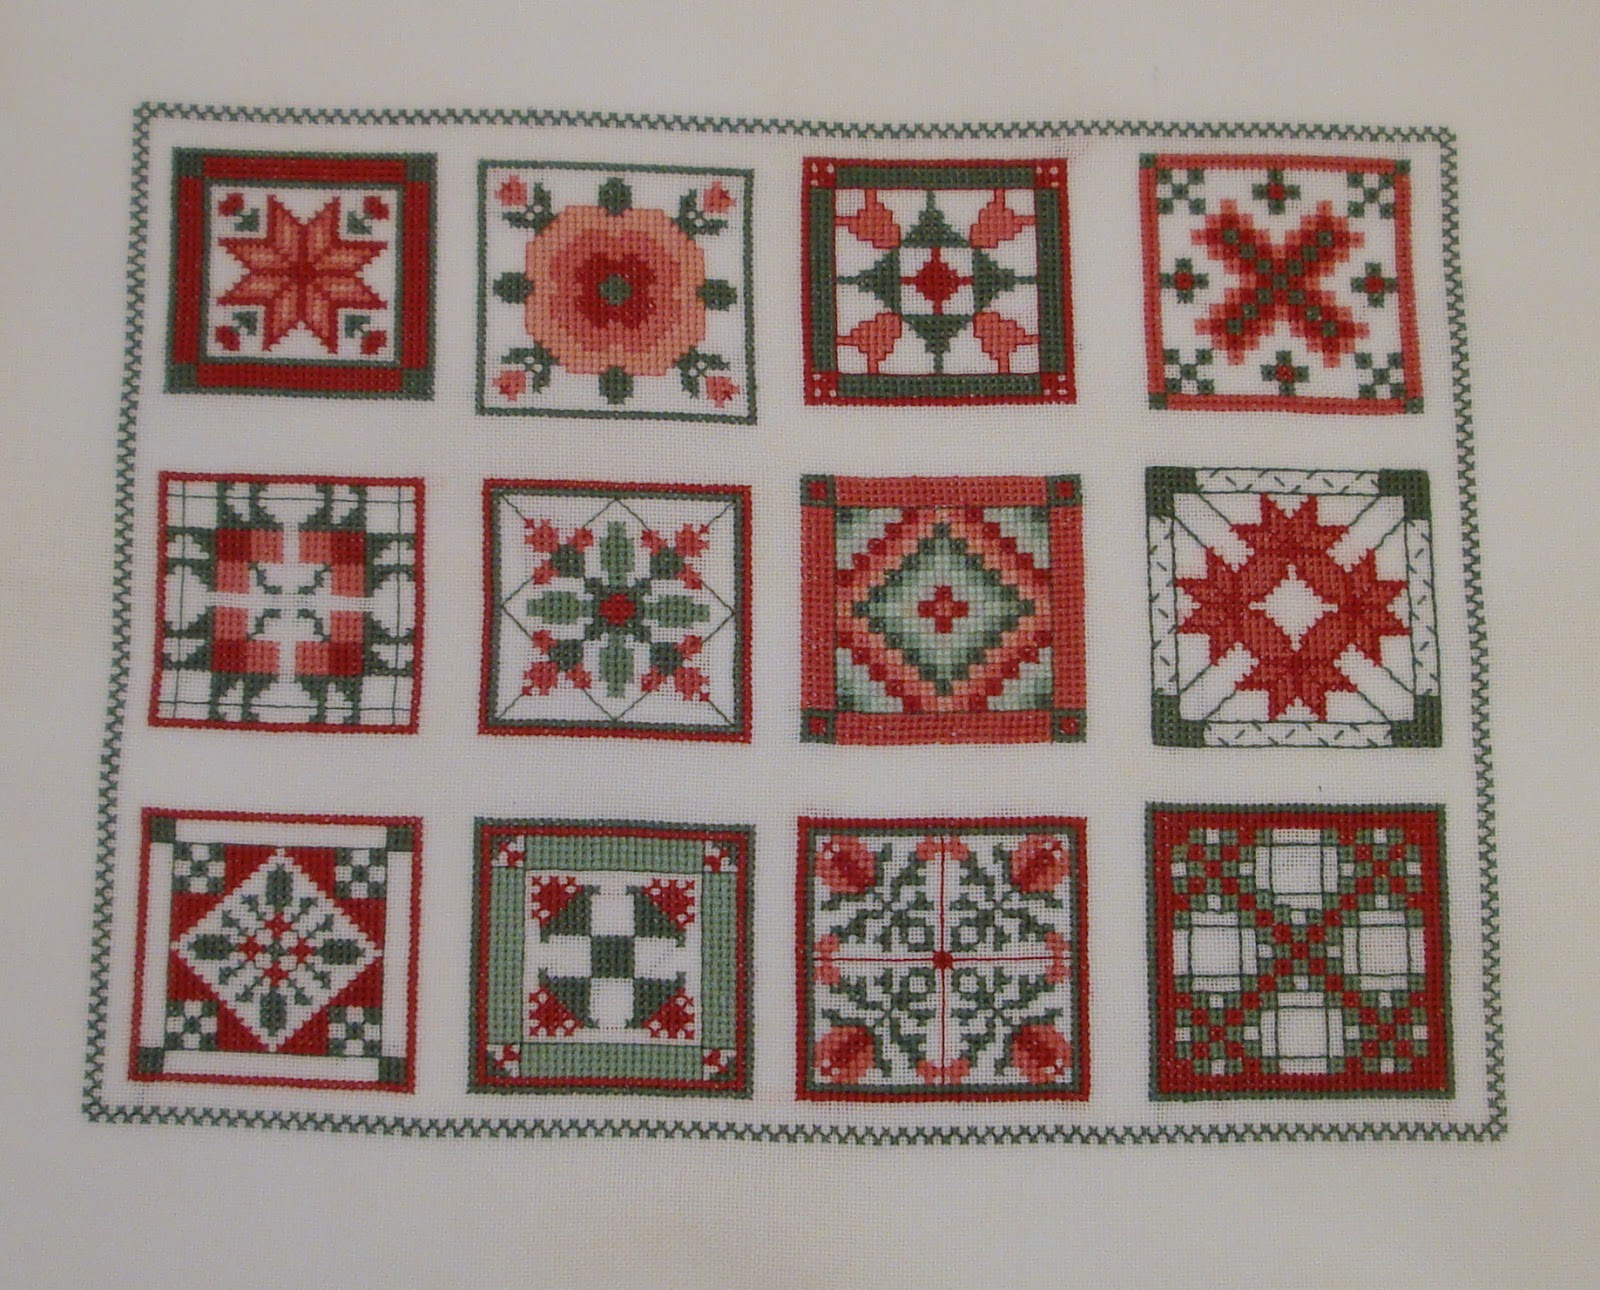 Quilt Patterns Cross Stitch : Everyday Art Work: Favorite Quilt Squares Cross Stitch